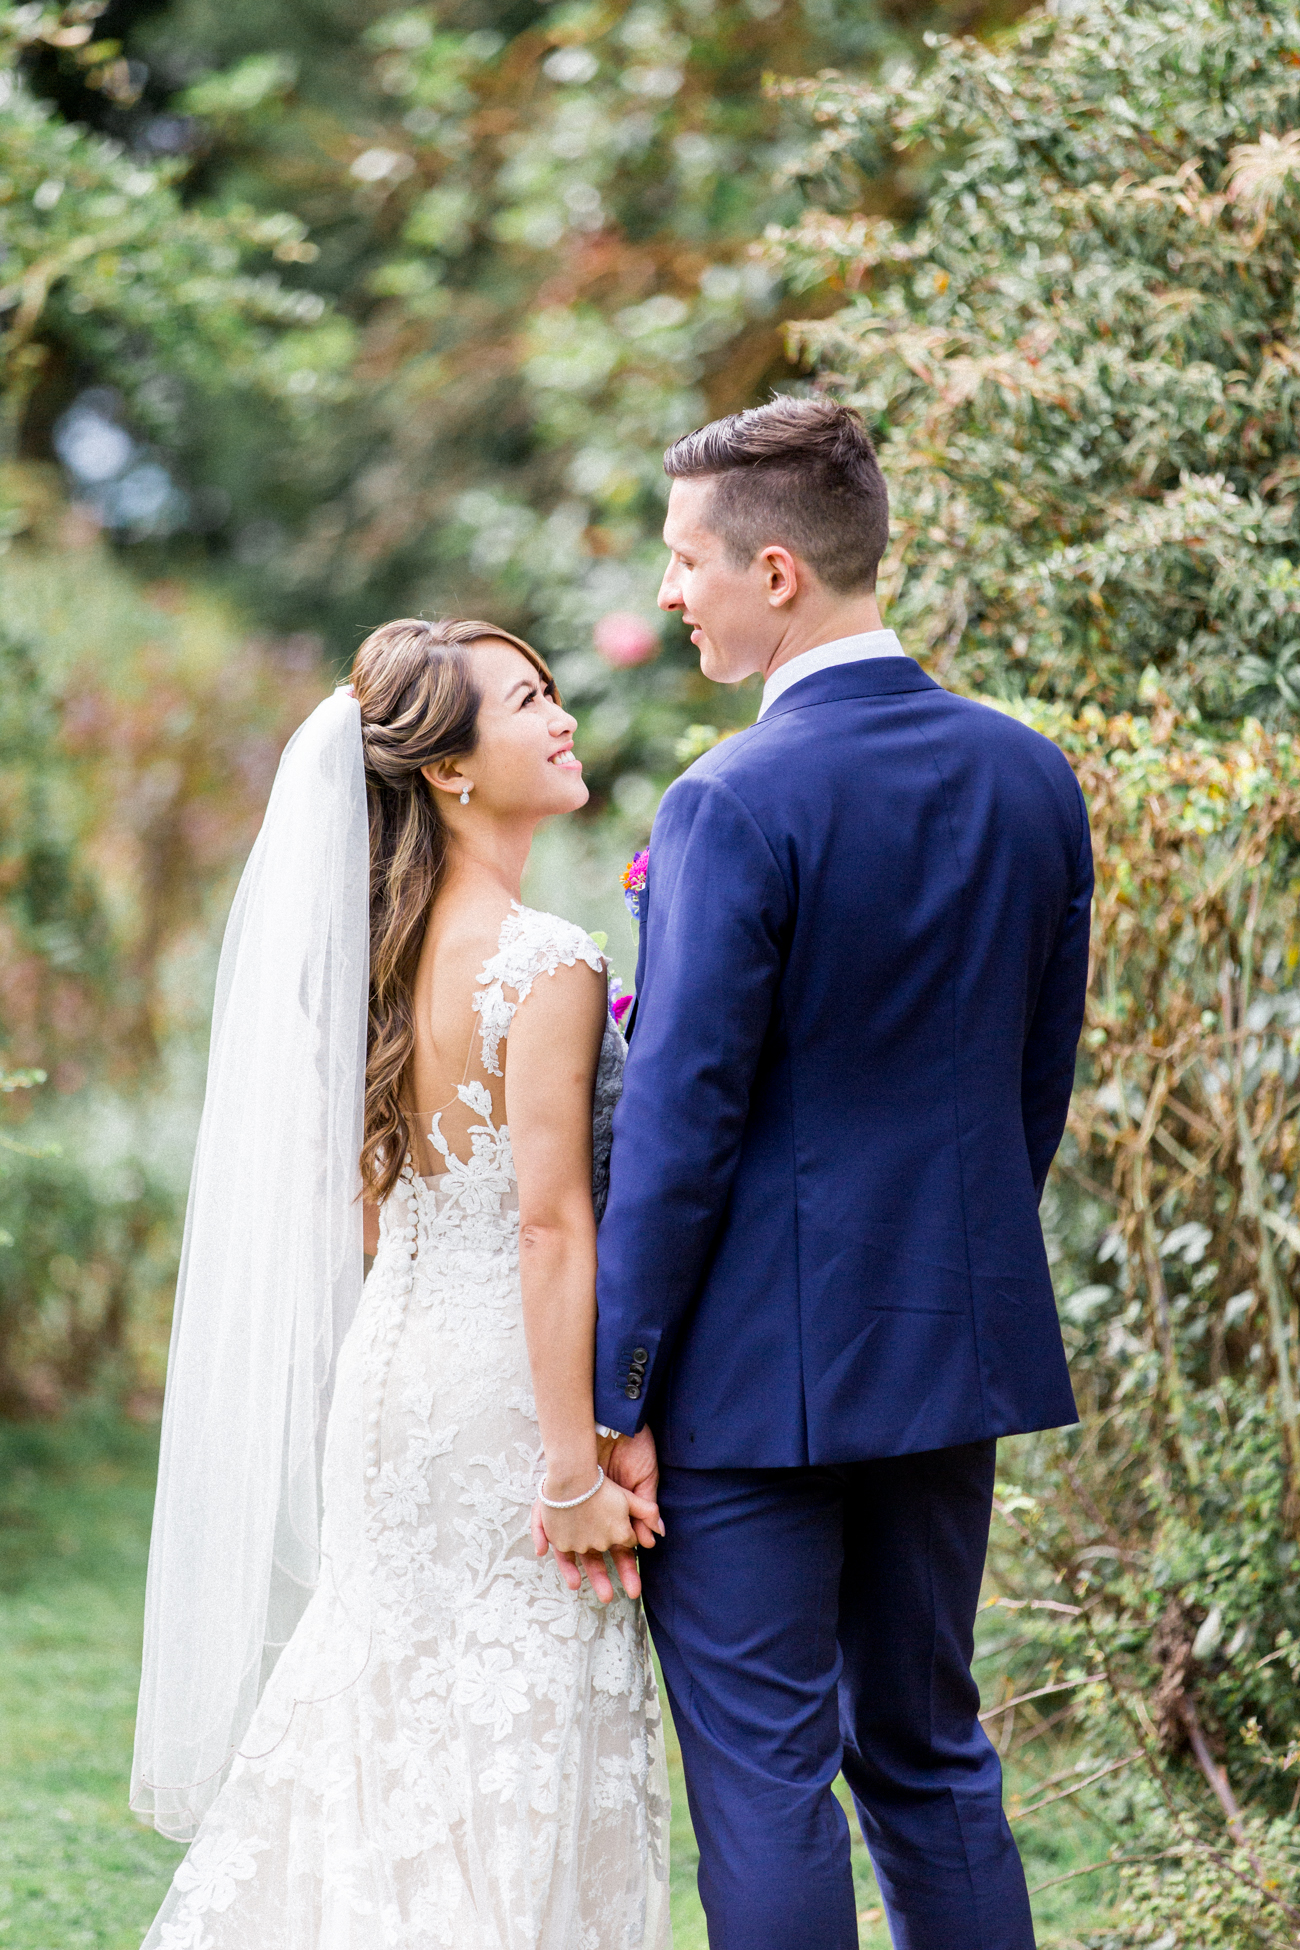 Bride and Groom Portrait | Natural Wedding Photographer Surrey | Philippa Sian Photography